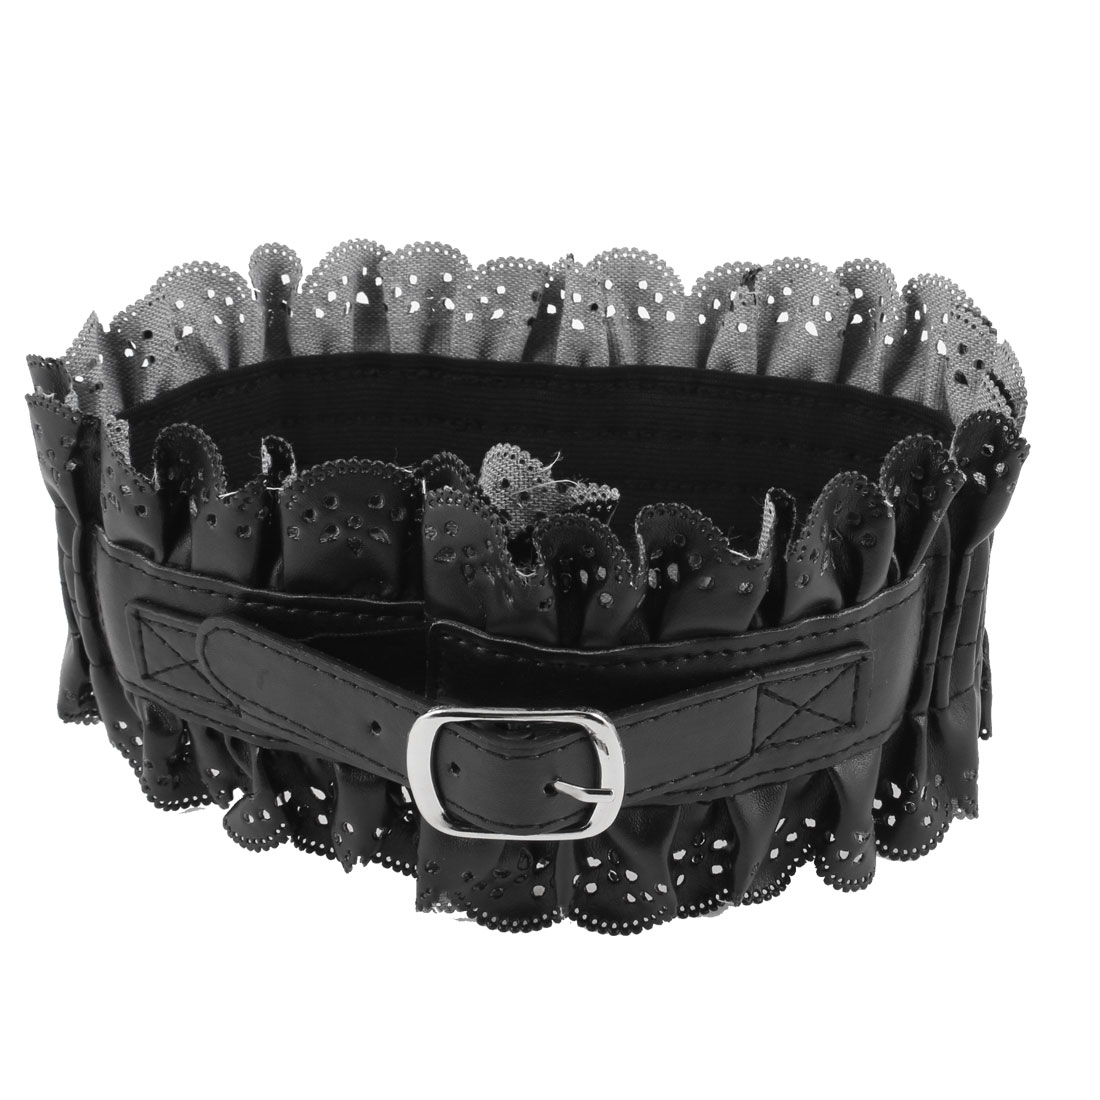 Ruffled Faux Leather 10cm Width Stretchy Cinch Belt Black for Woman